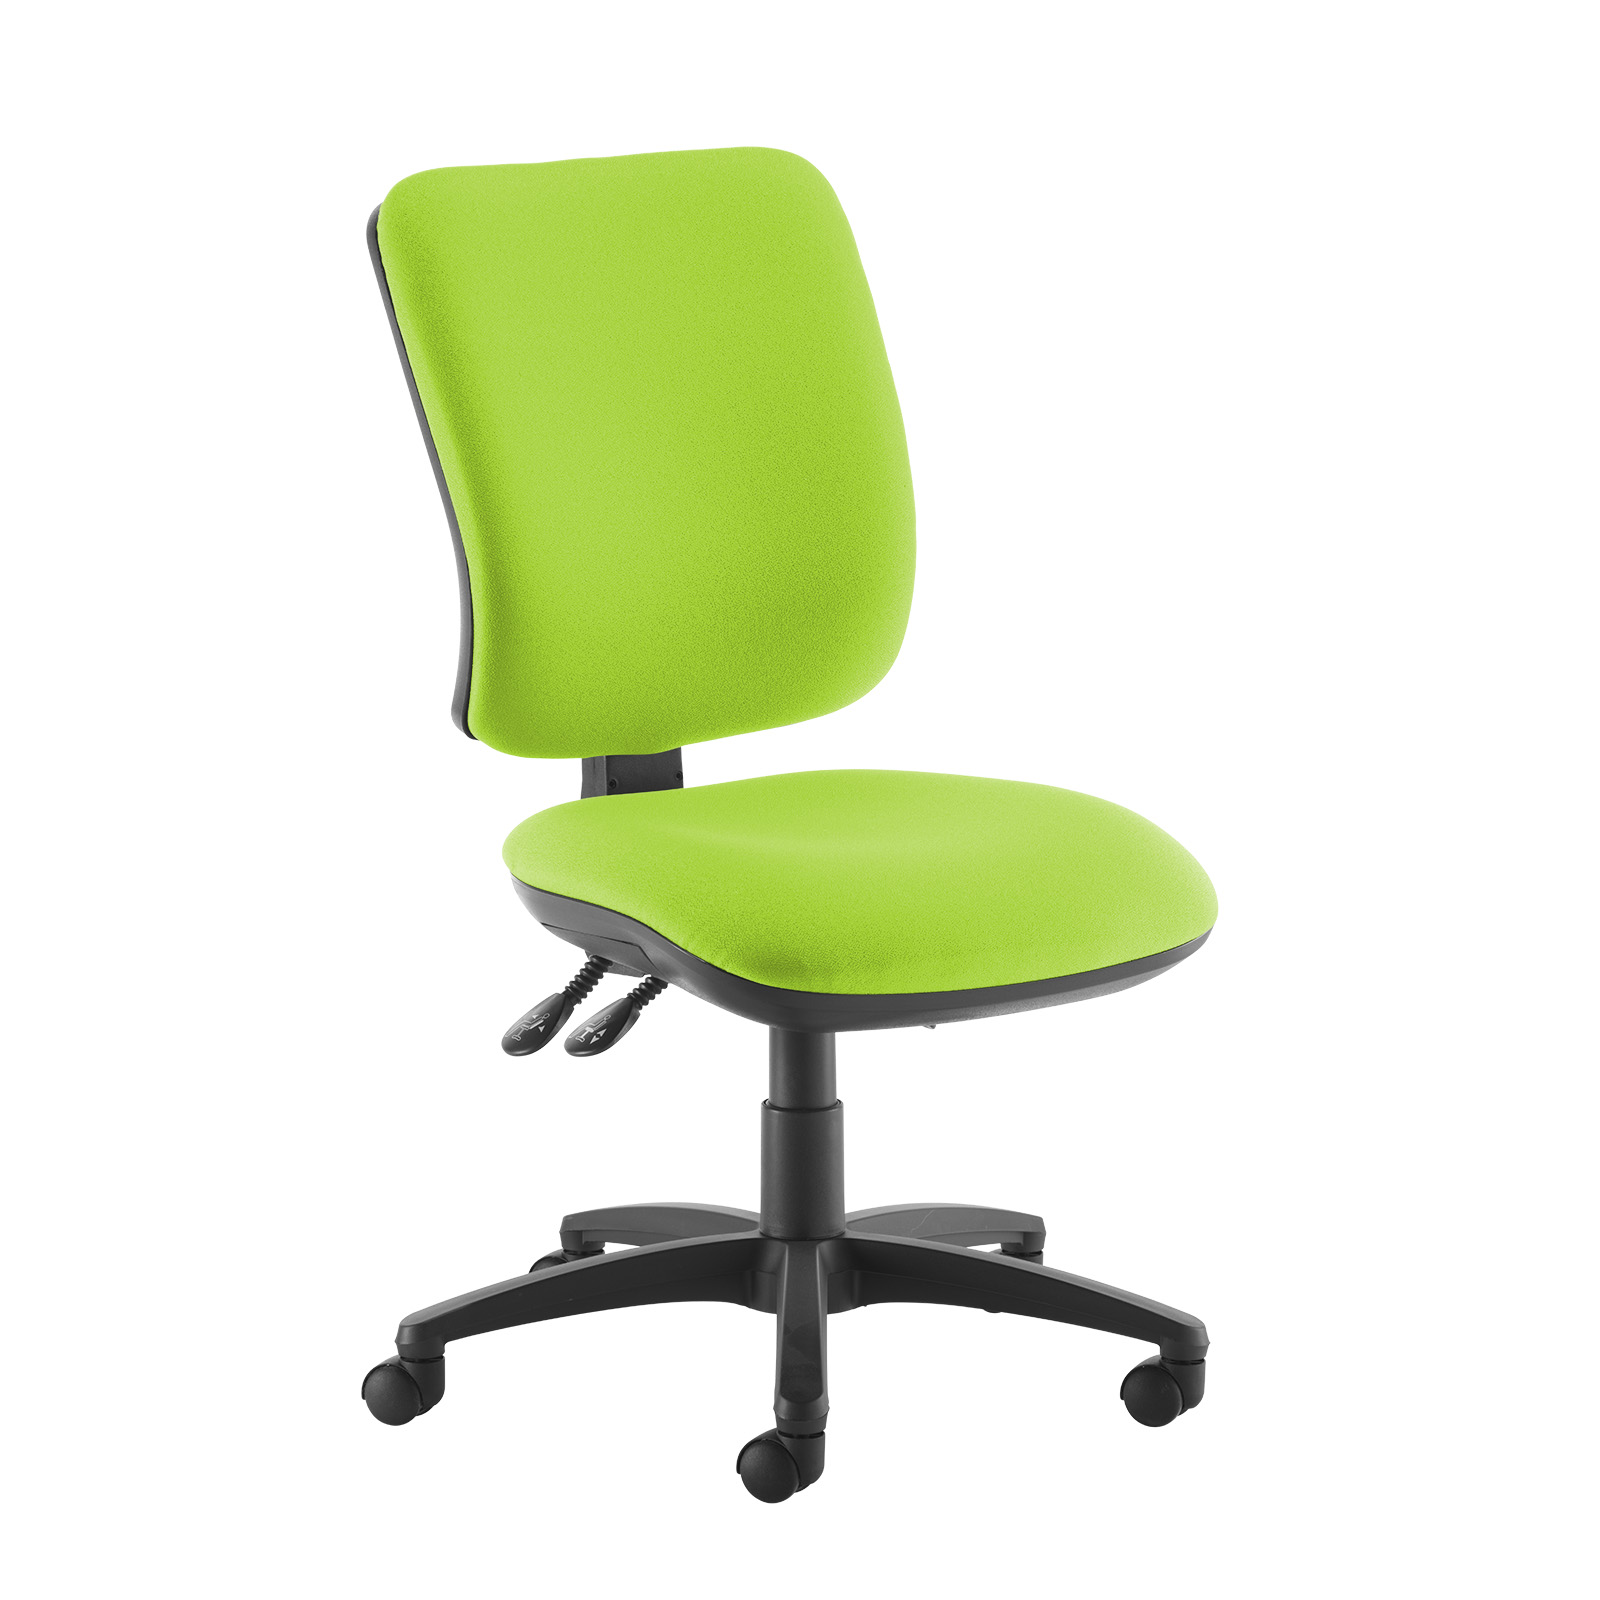 Desk Chairs Senza high back operator chair with no arms - green